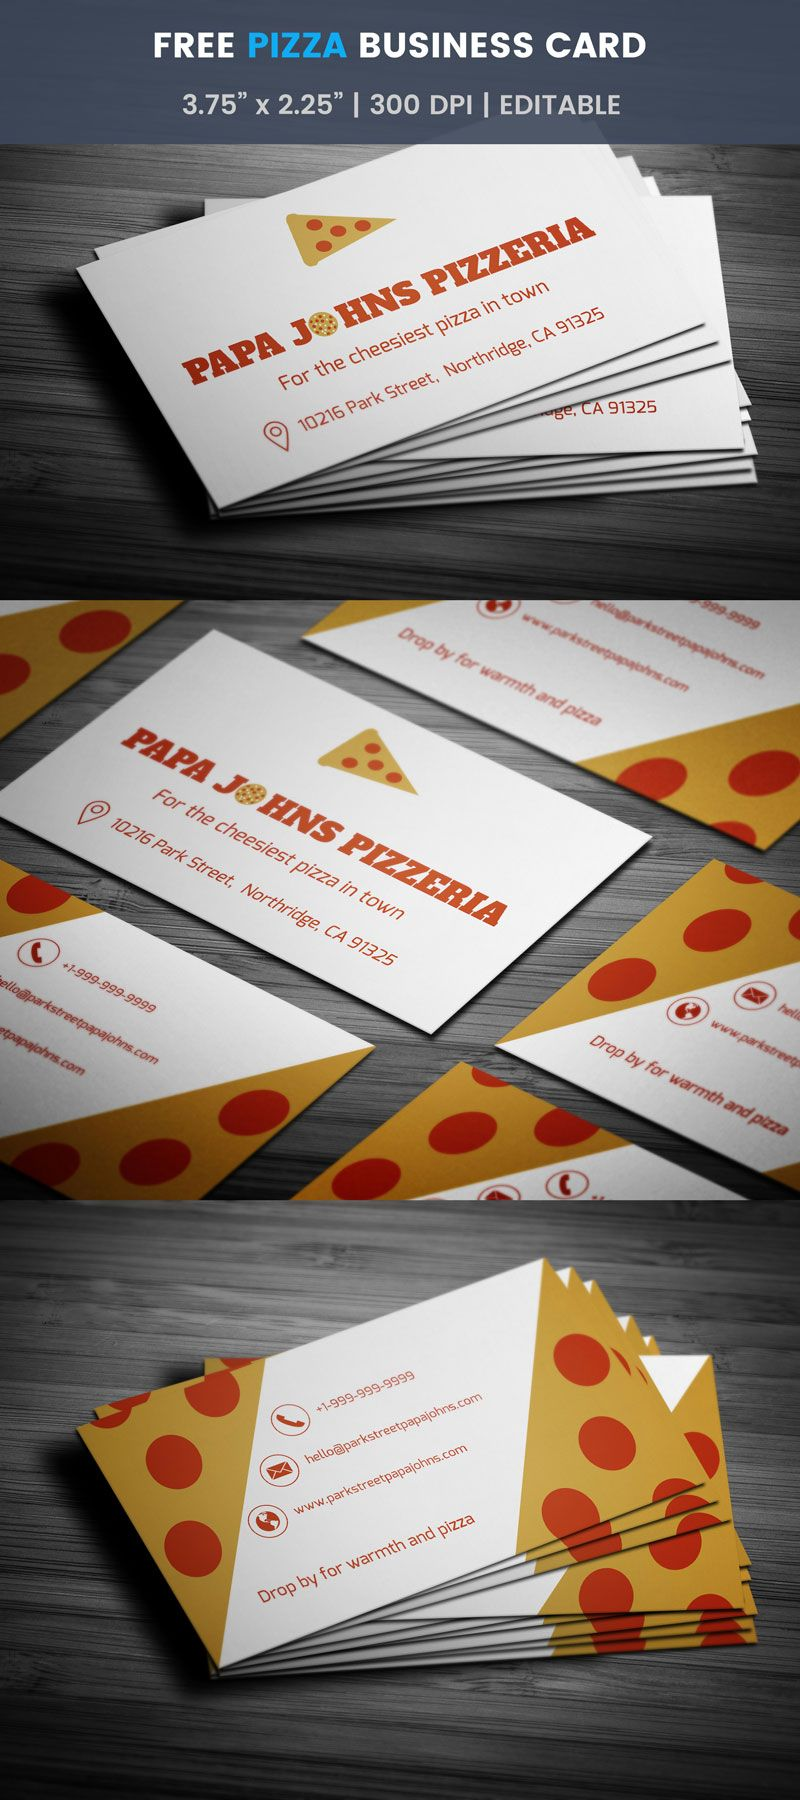 Pizza Business Card - Full Preview | Free Business Card Templates ...